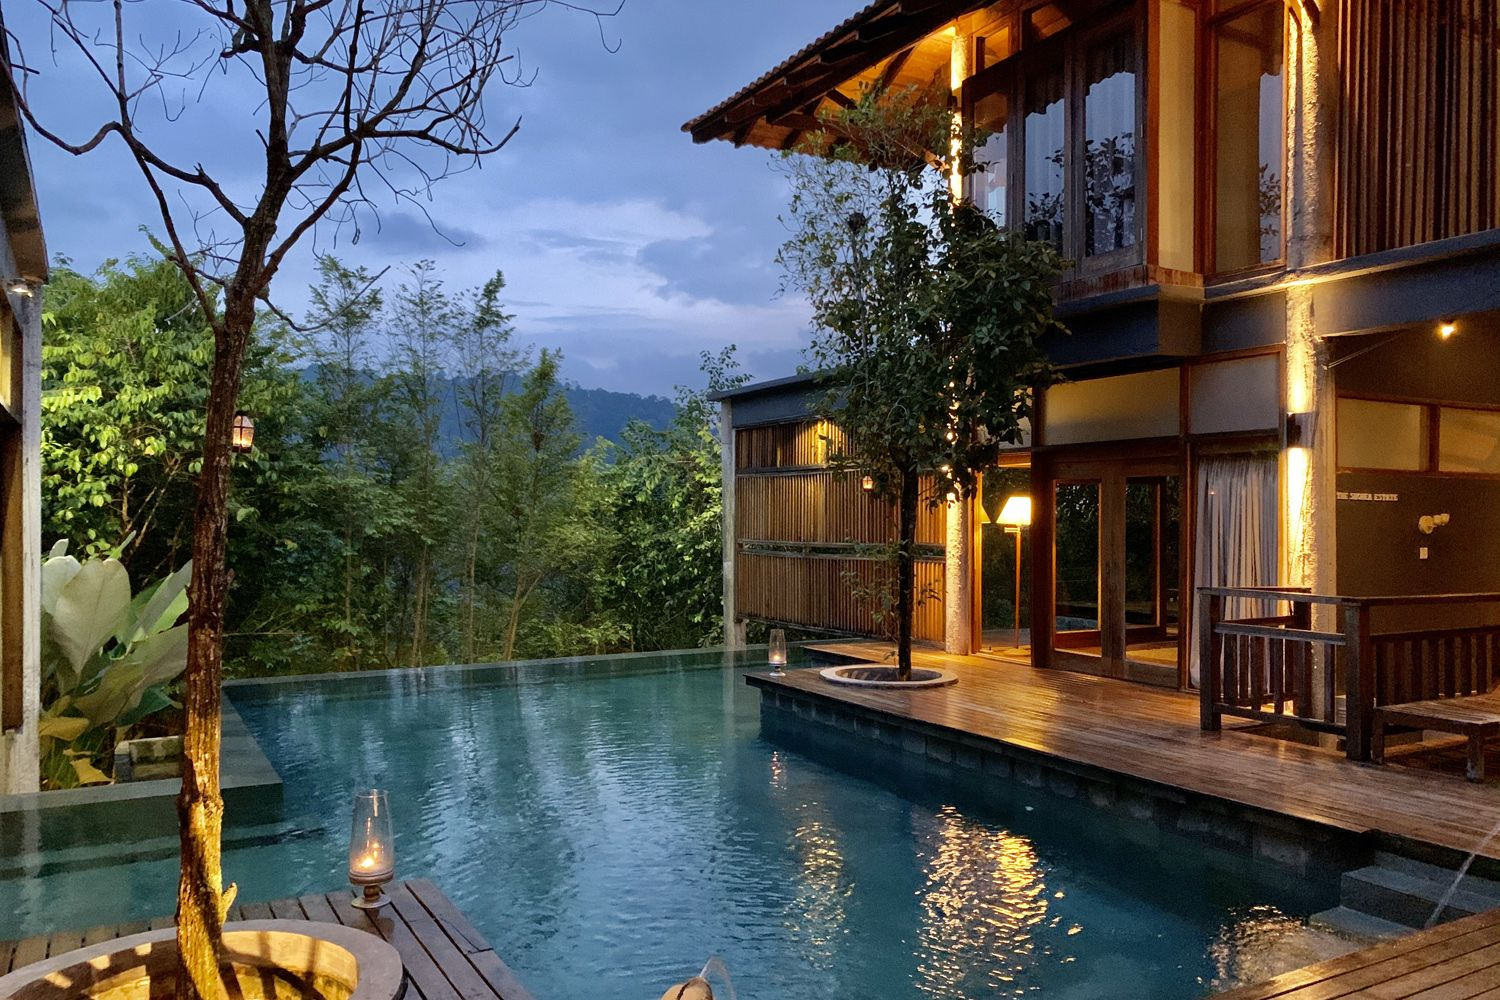 CMCO & RMCO: Private Retreats In Malaysia For A Post-Quarantine Staycation